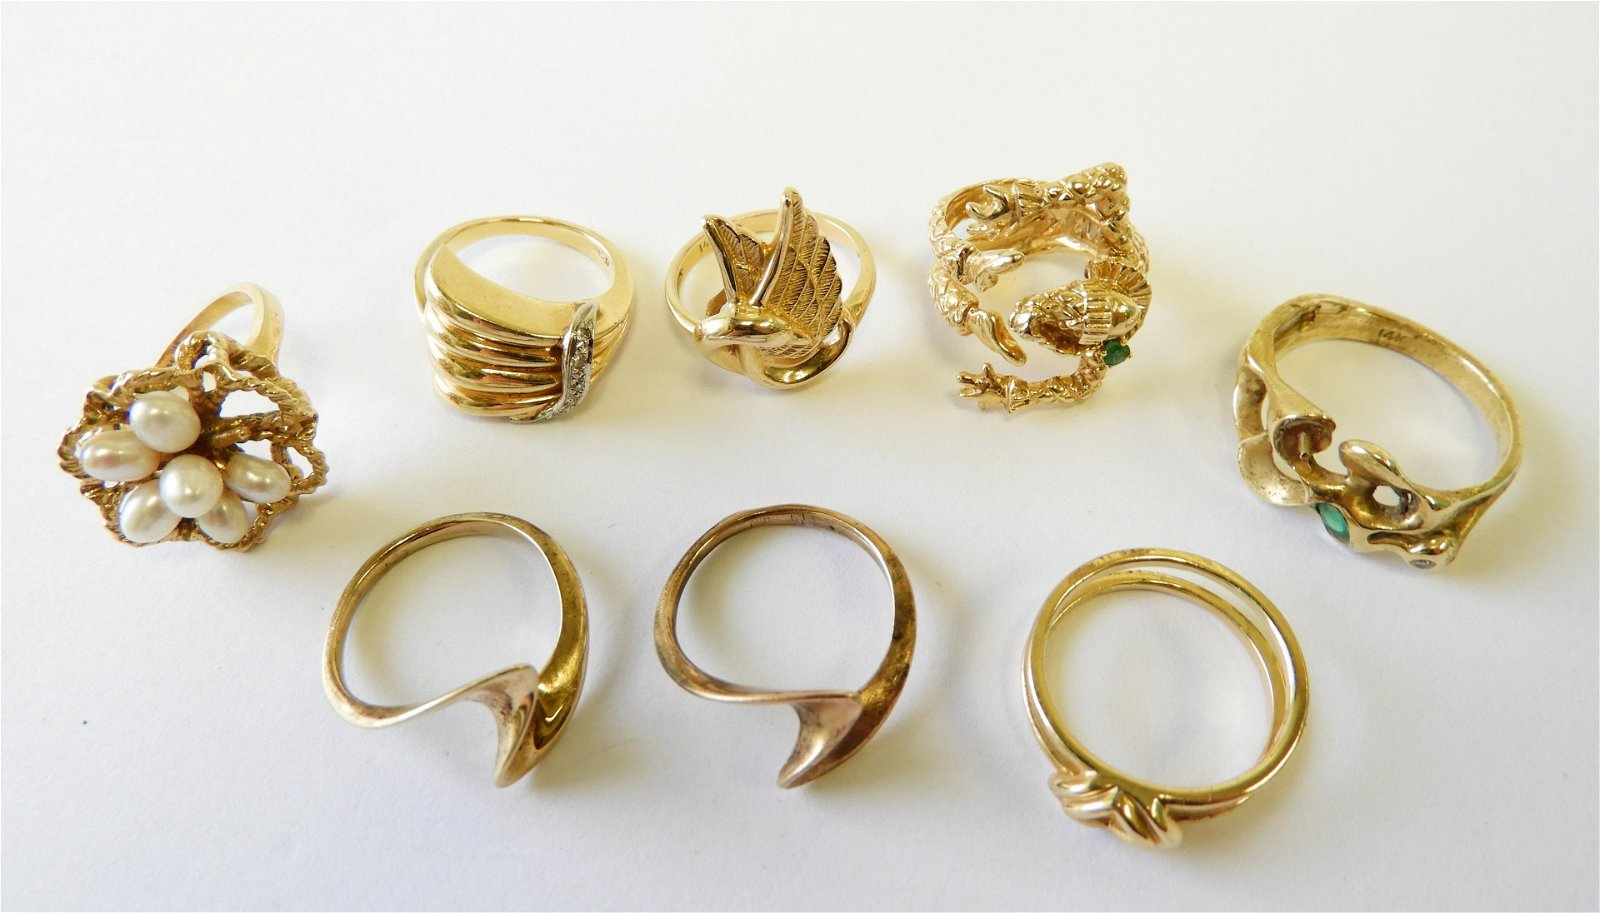 Group of (8) 14k Gold Rings